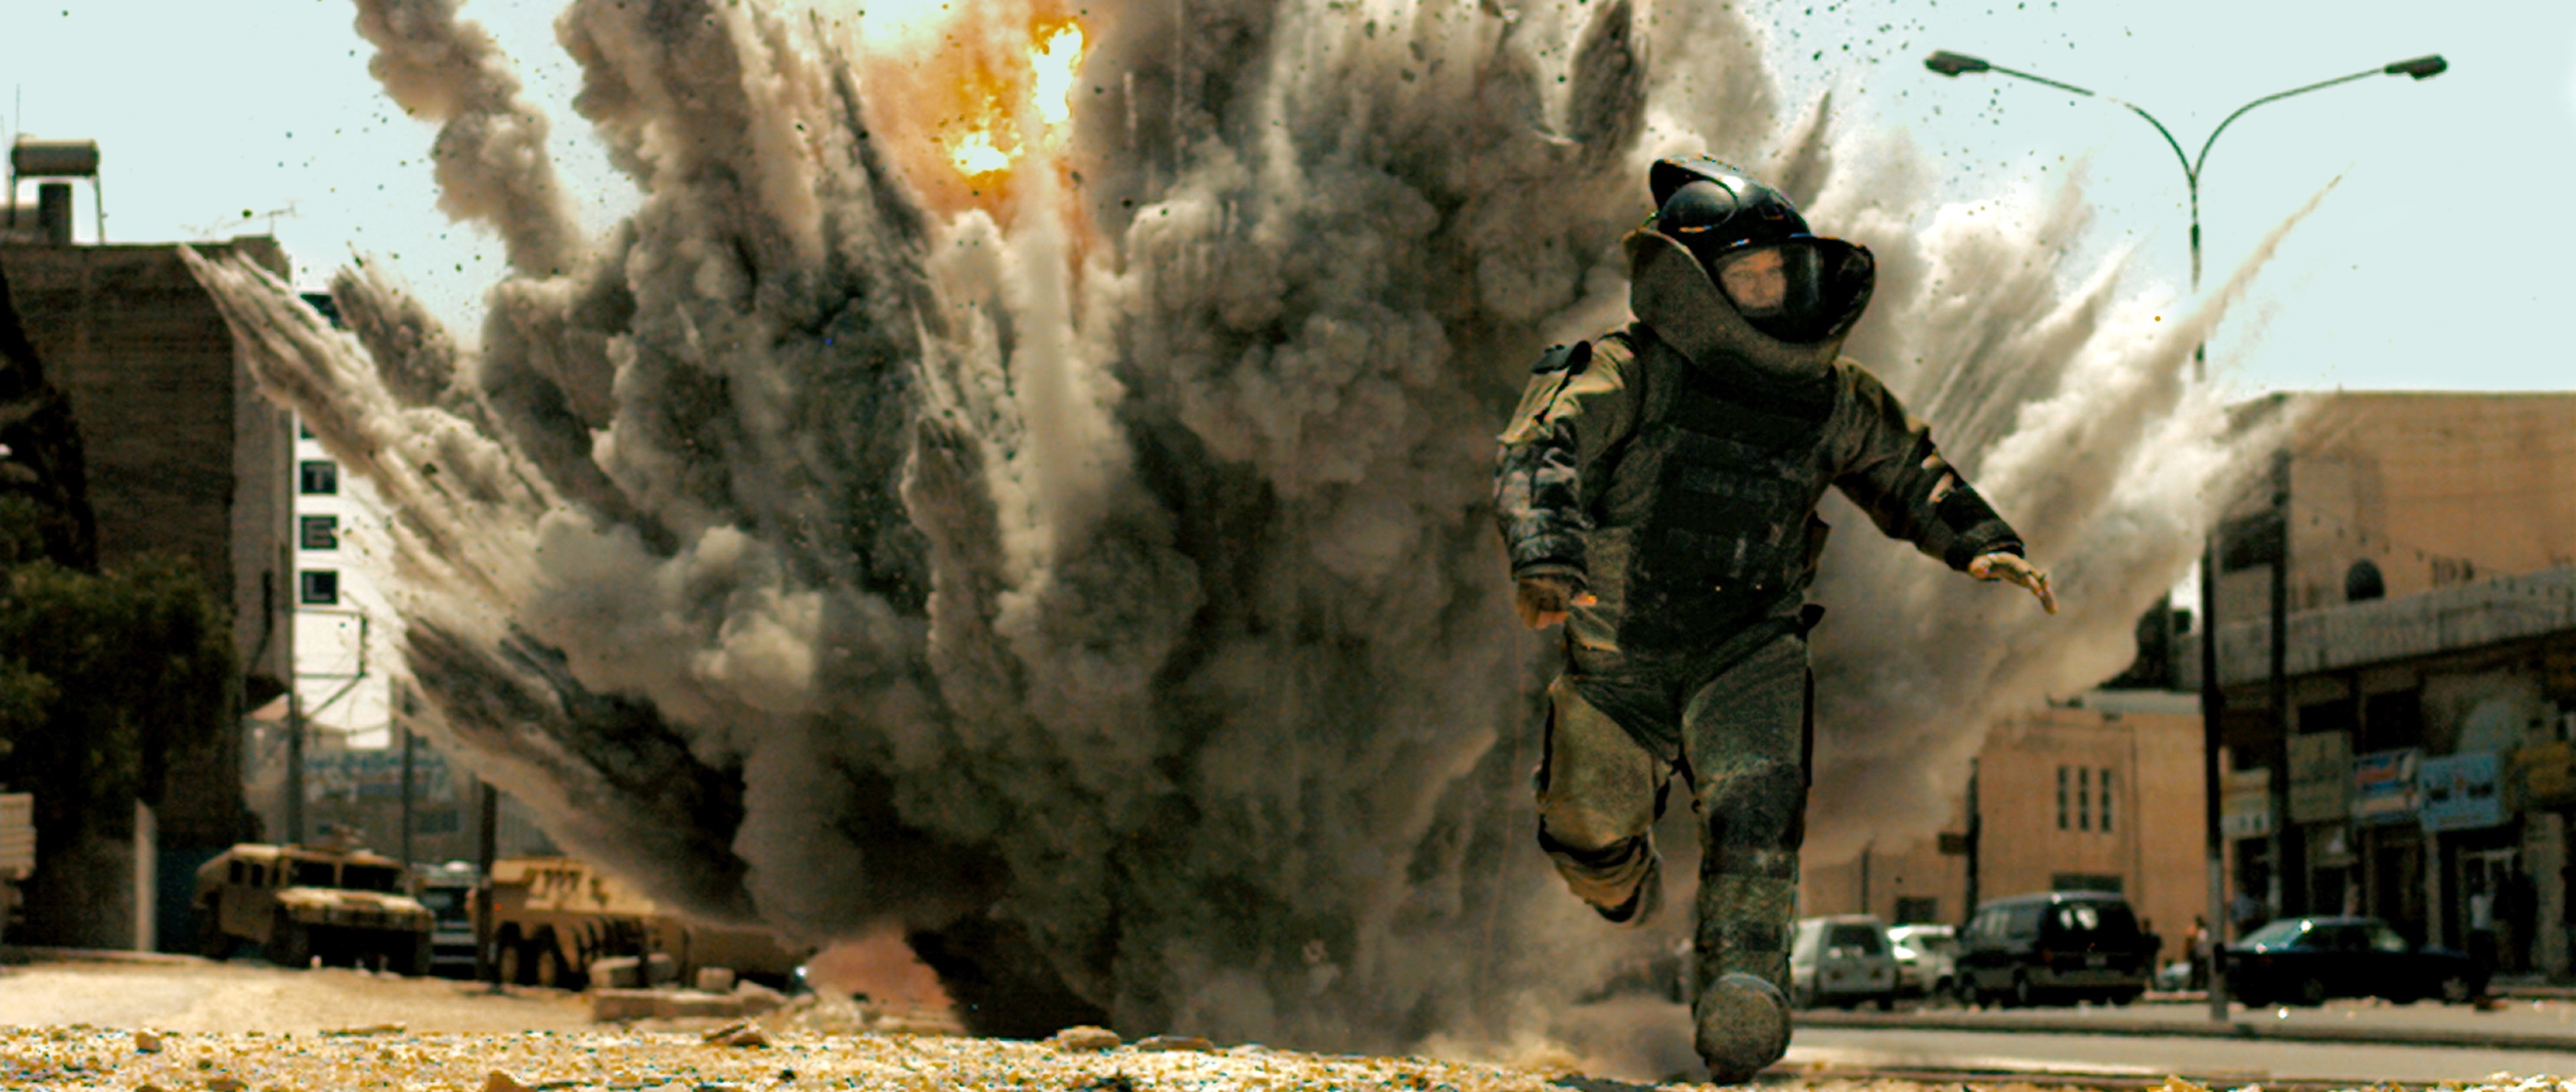 Film Review The Hurt Locker